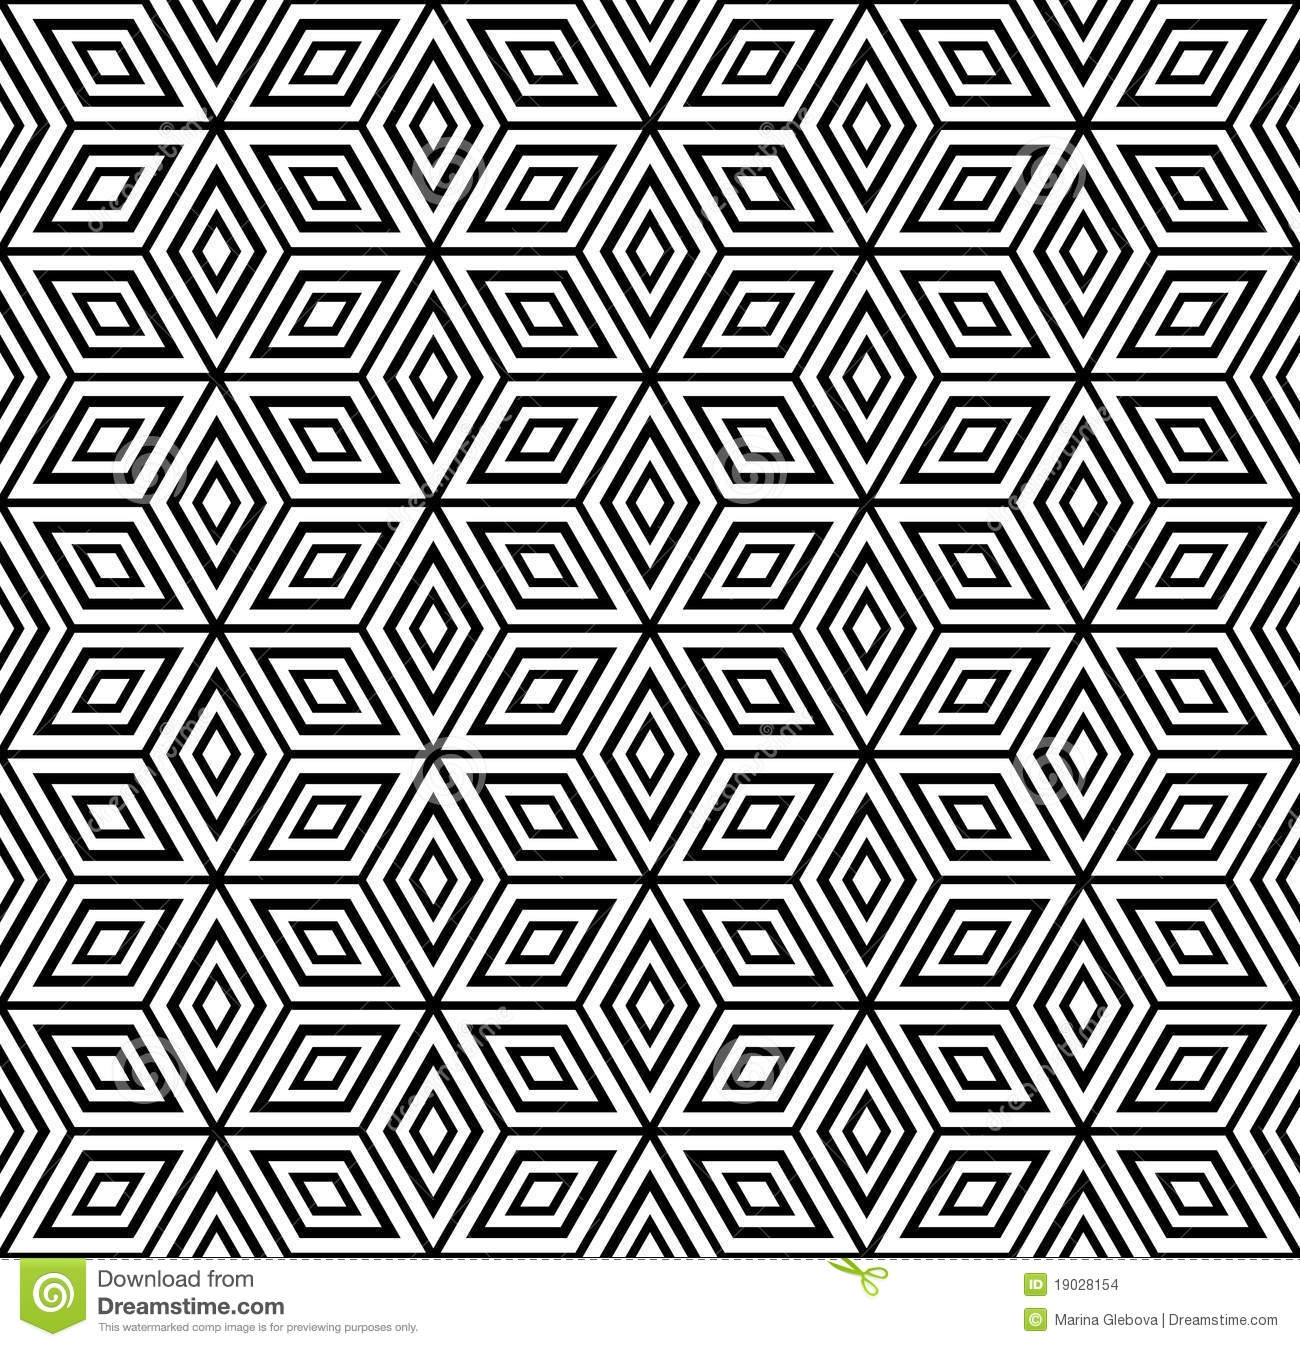 geometric coloring pages - stock images seamless geometric pattern image